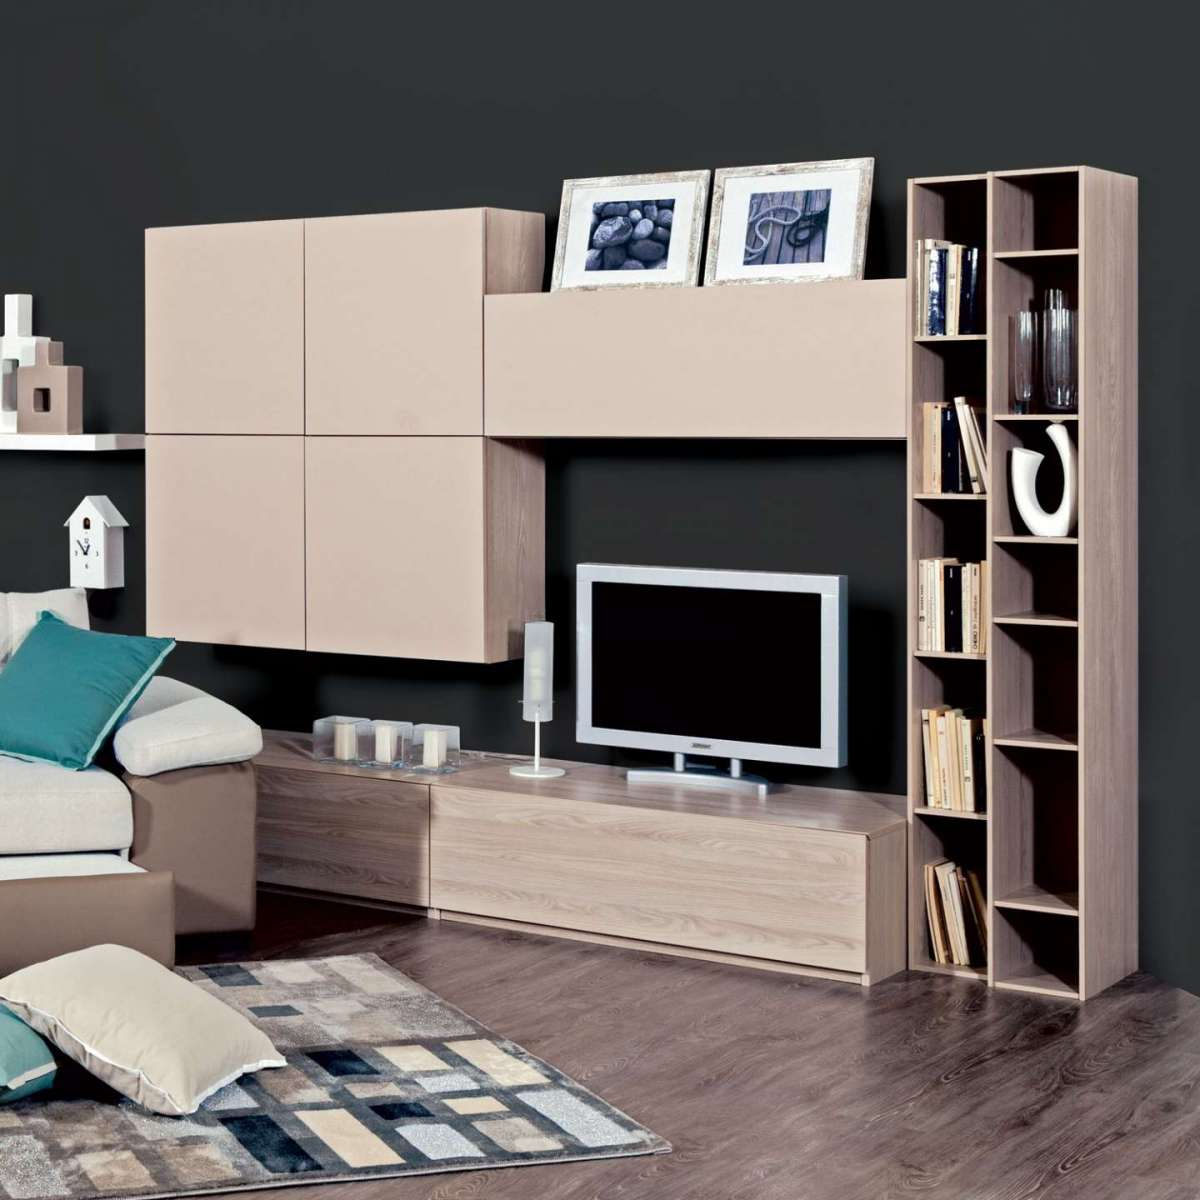 Stunning Semeraro Soggiorni Moderni Images - Design and Ideas ...